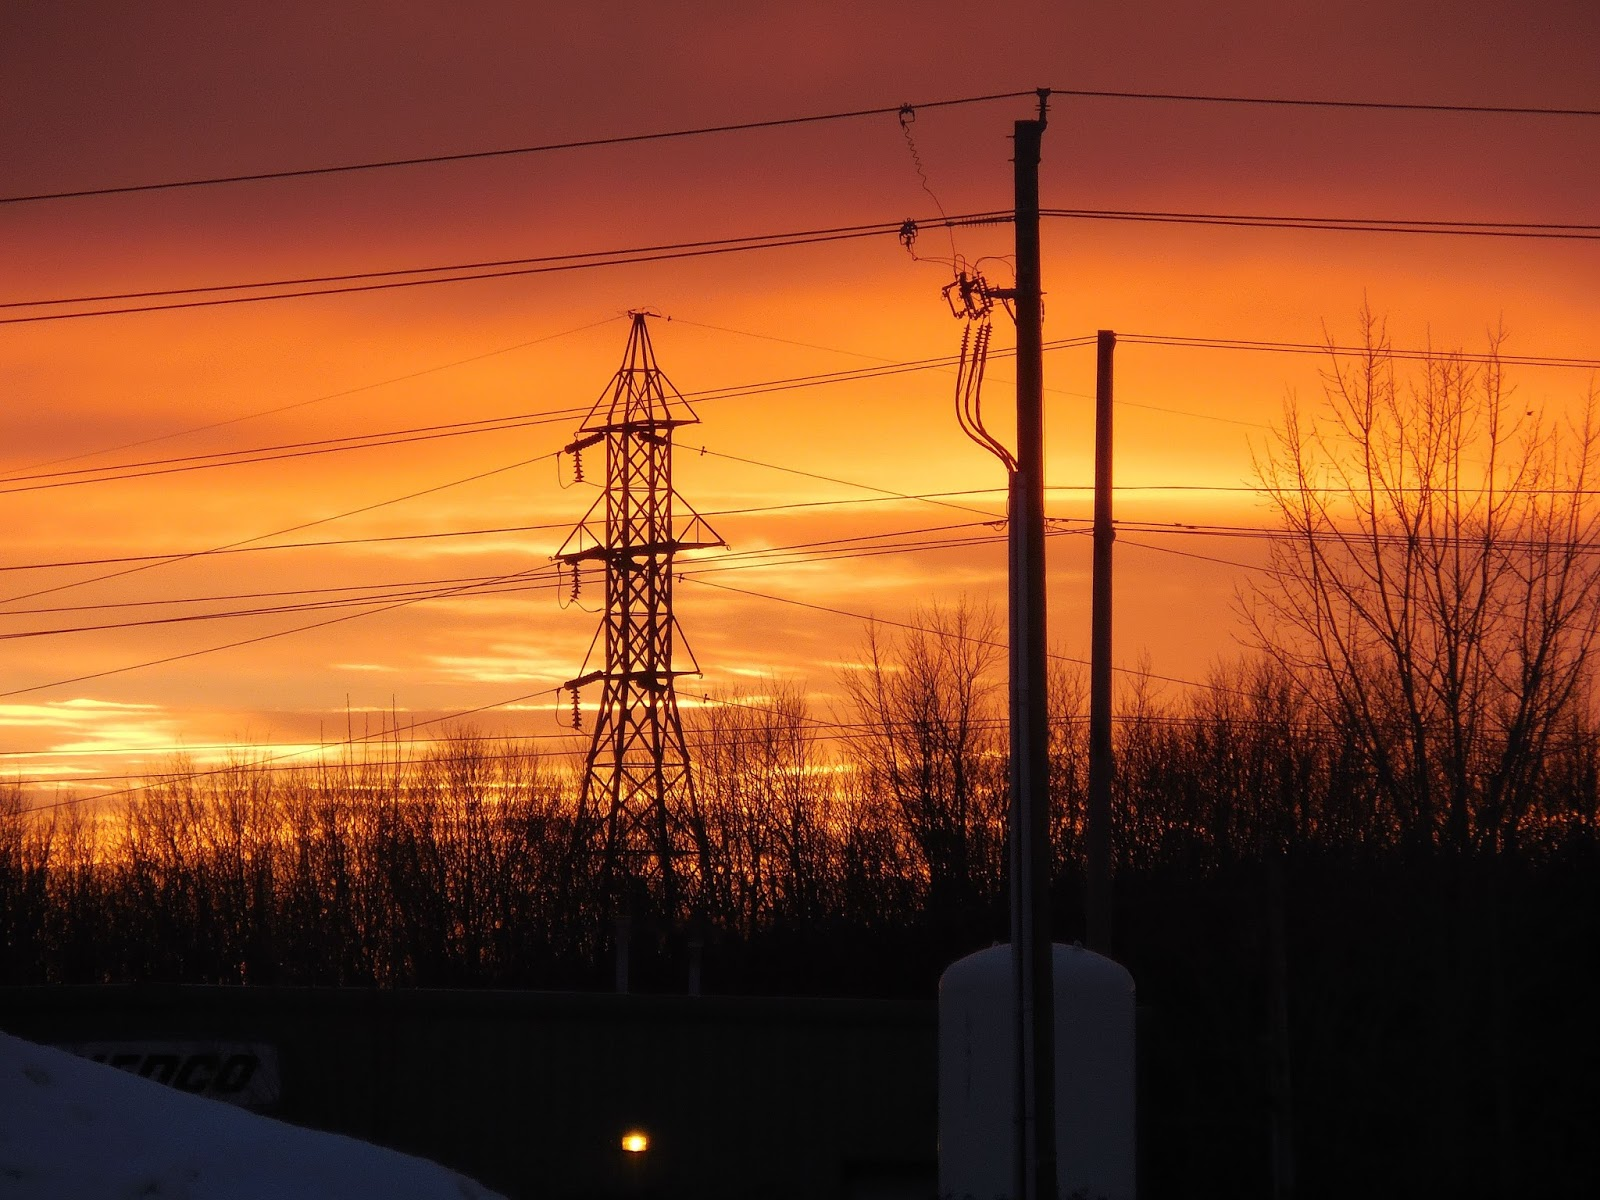 Mark Bellis: Power lines in the Sunset